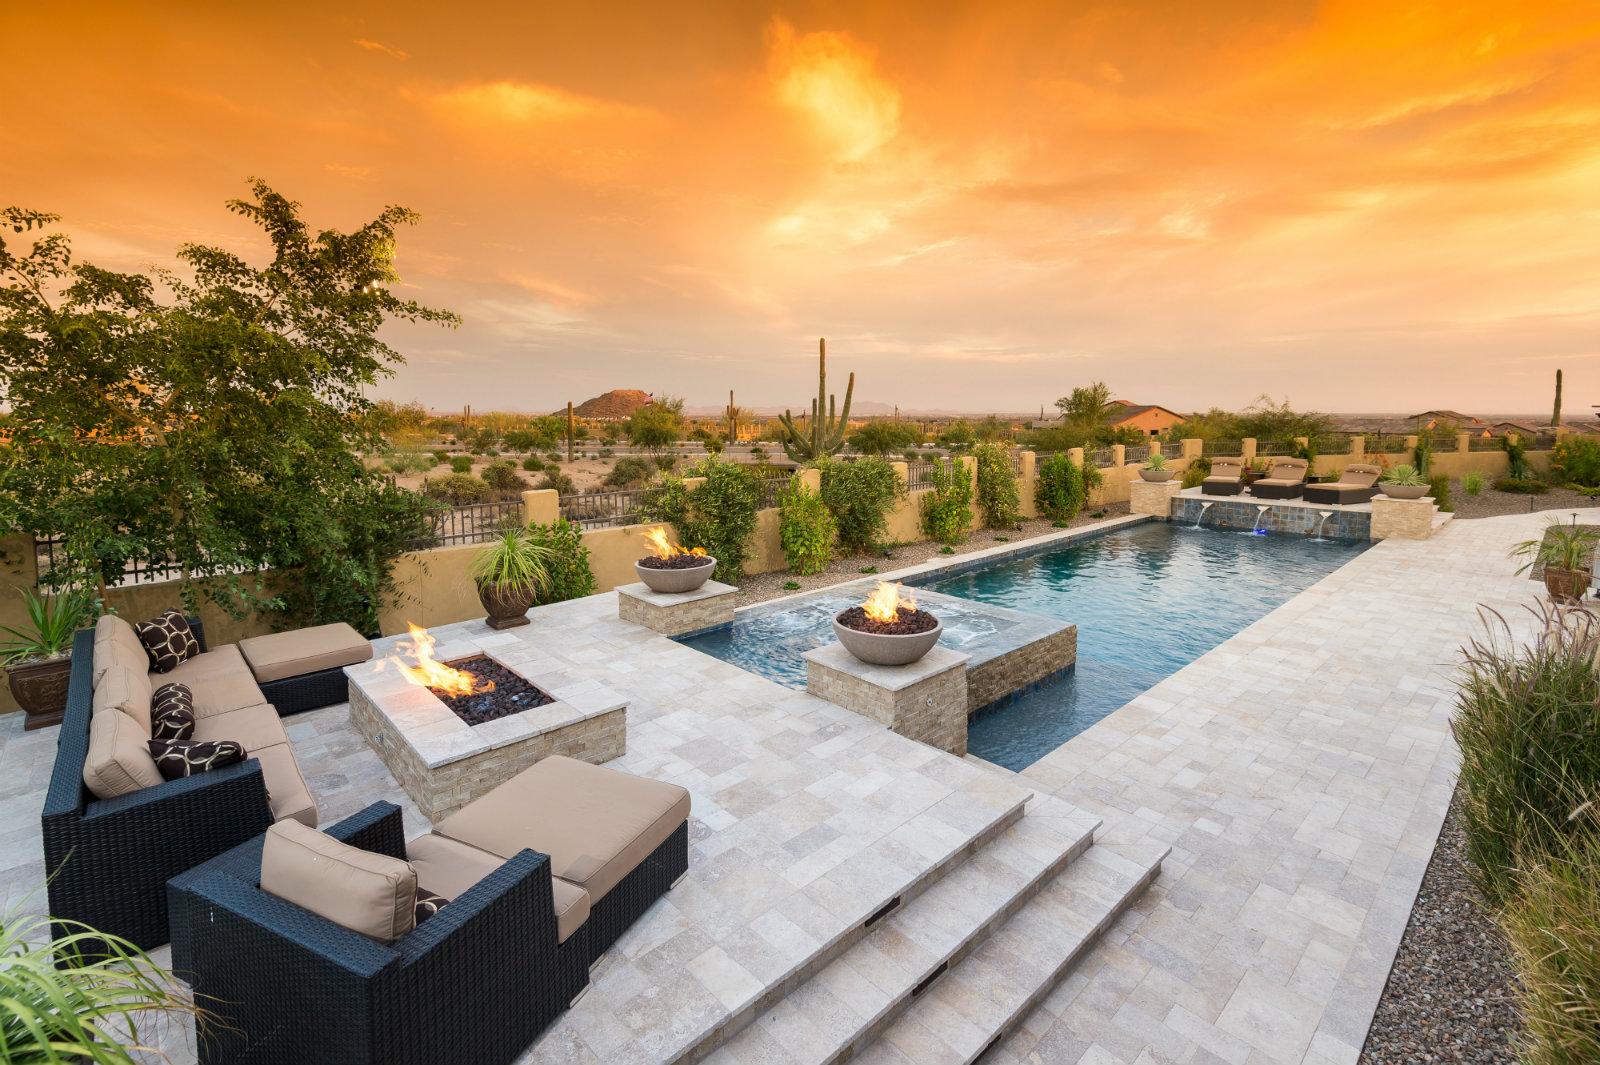 California Pools Amp Landscape Ranks Third In Customer